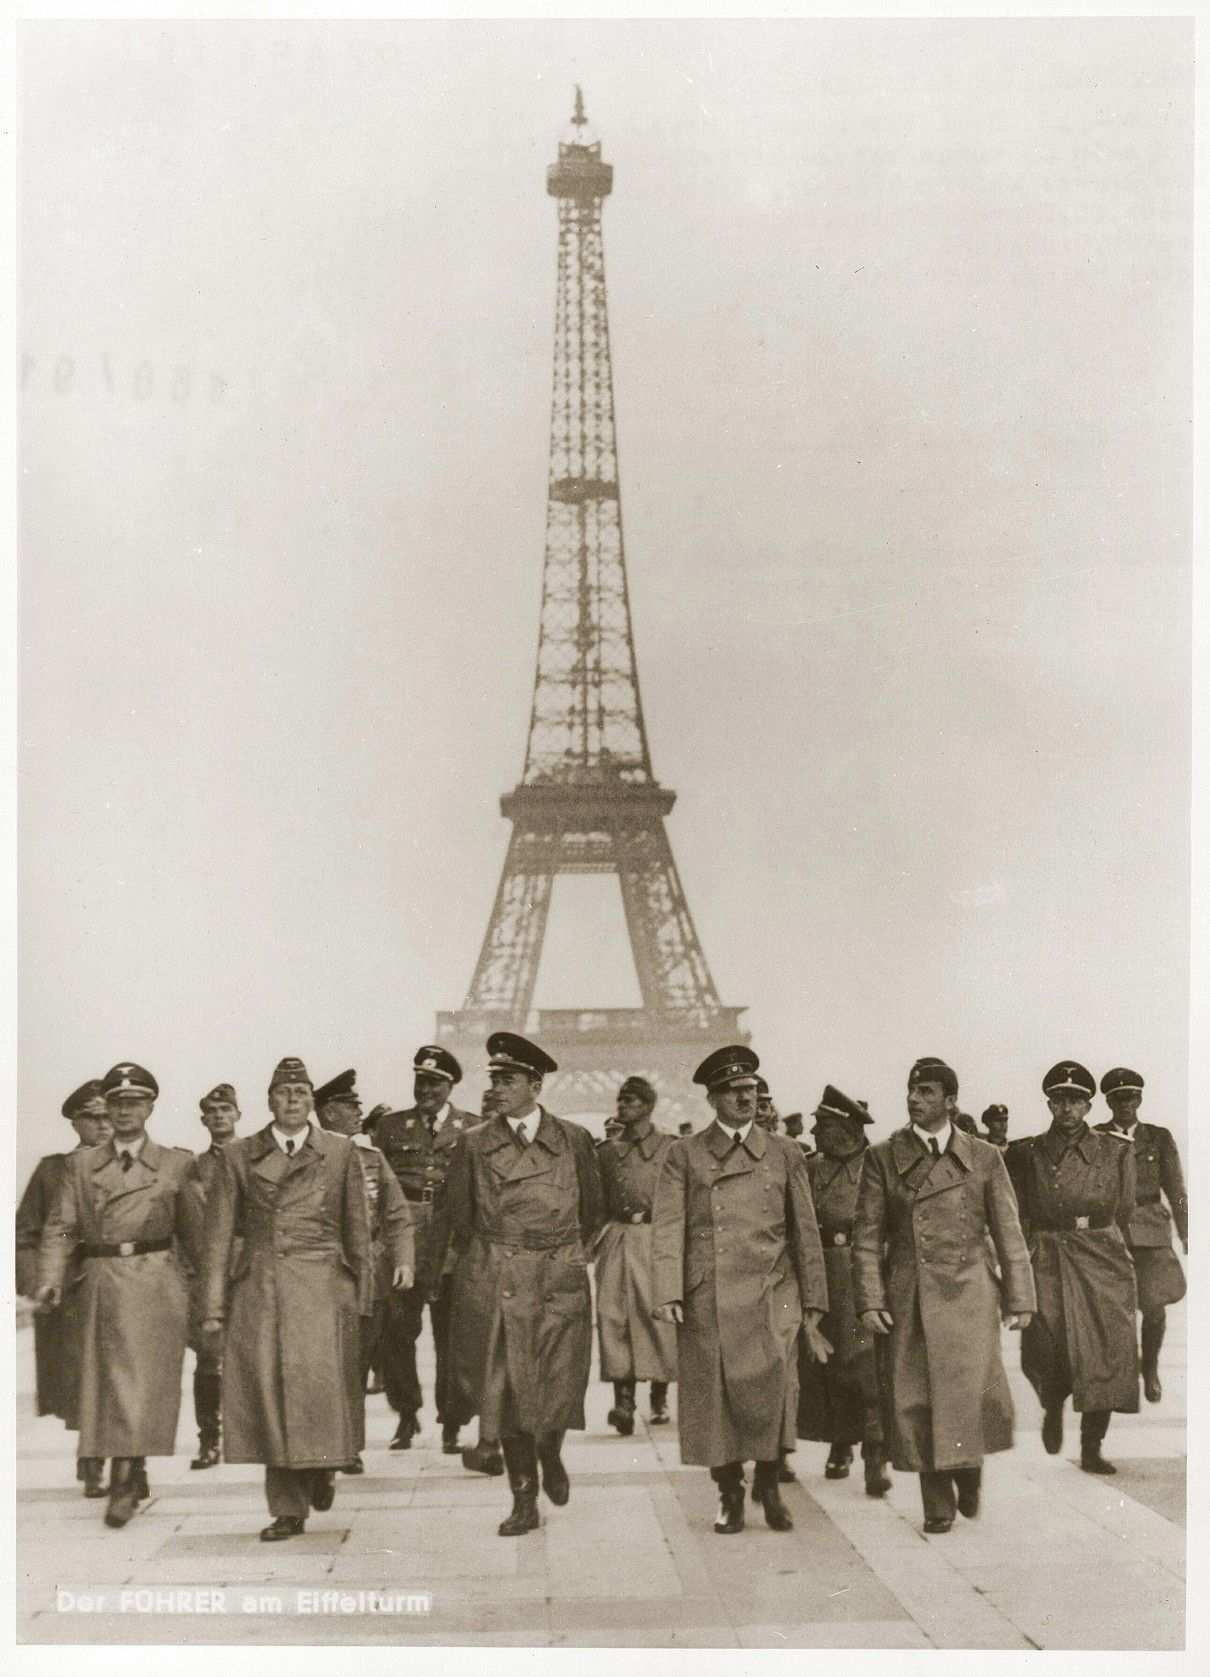 Hitler and the Eiffel Tower